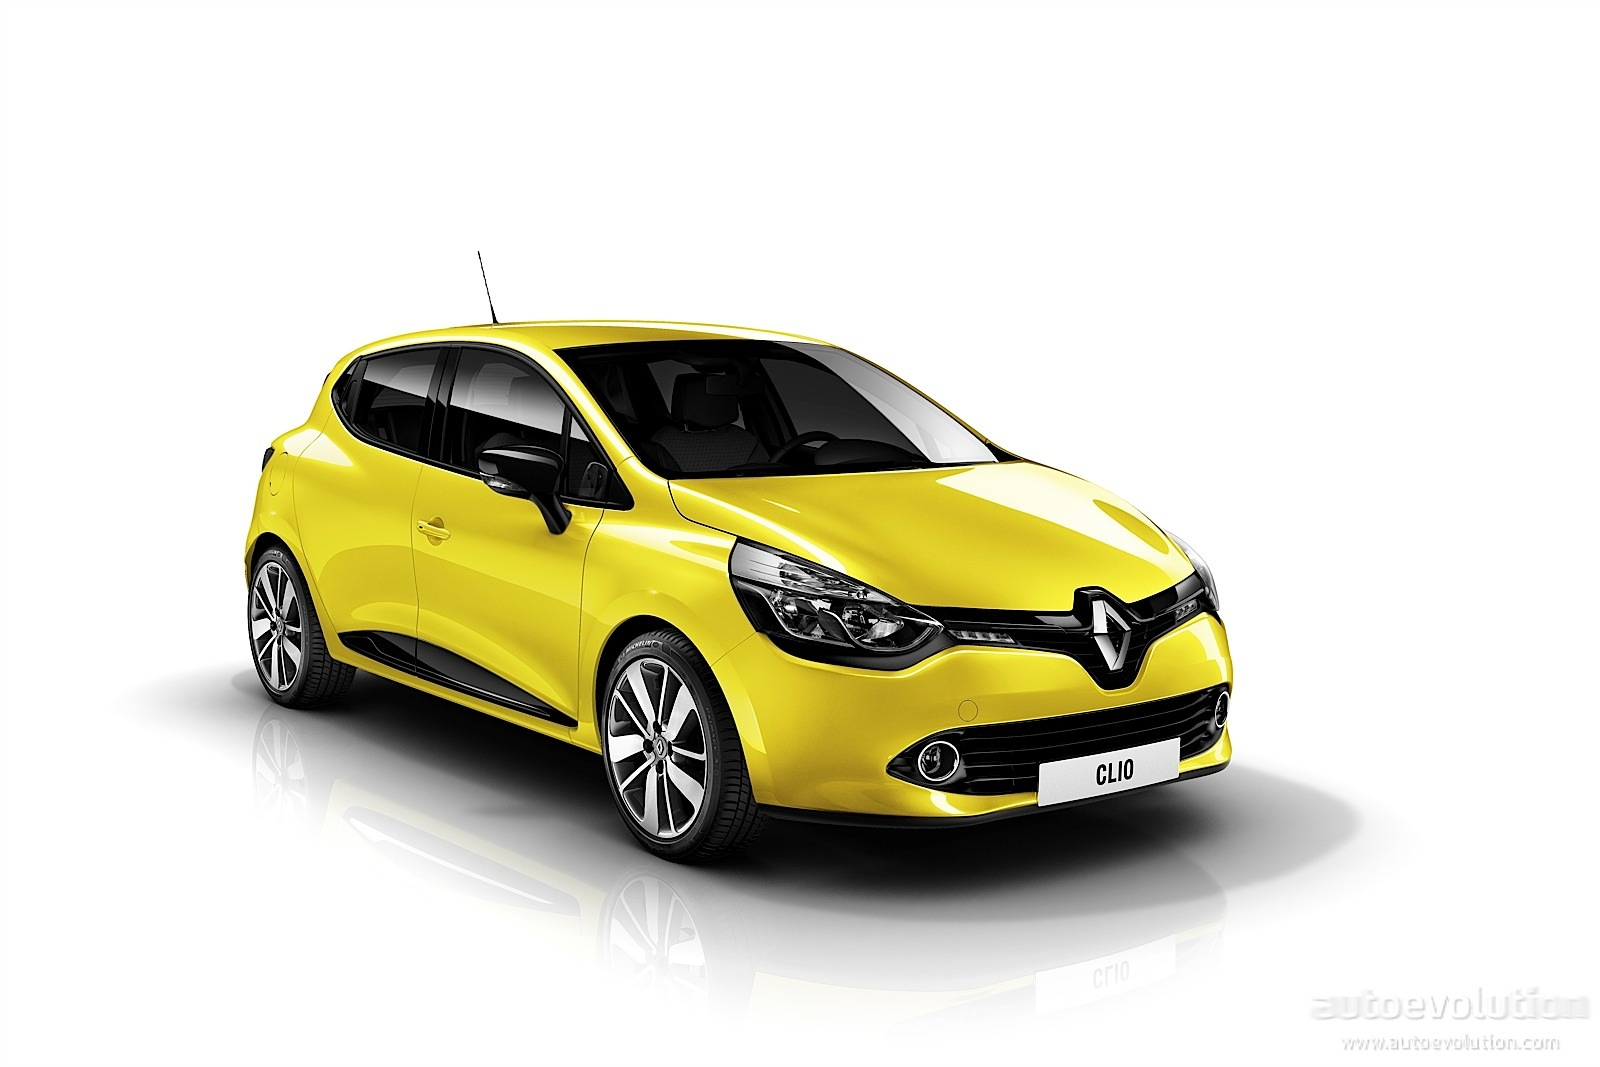 interior and exterior new renault clio 4 all about cars. Black Bedroom Furniture Sets. Home Design Ideas